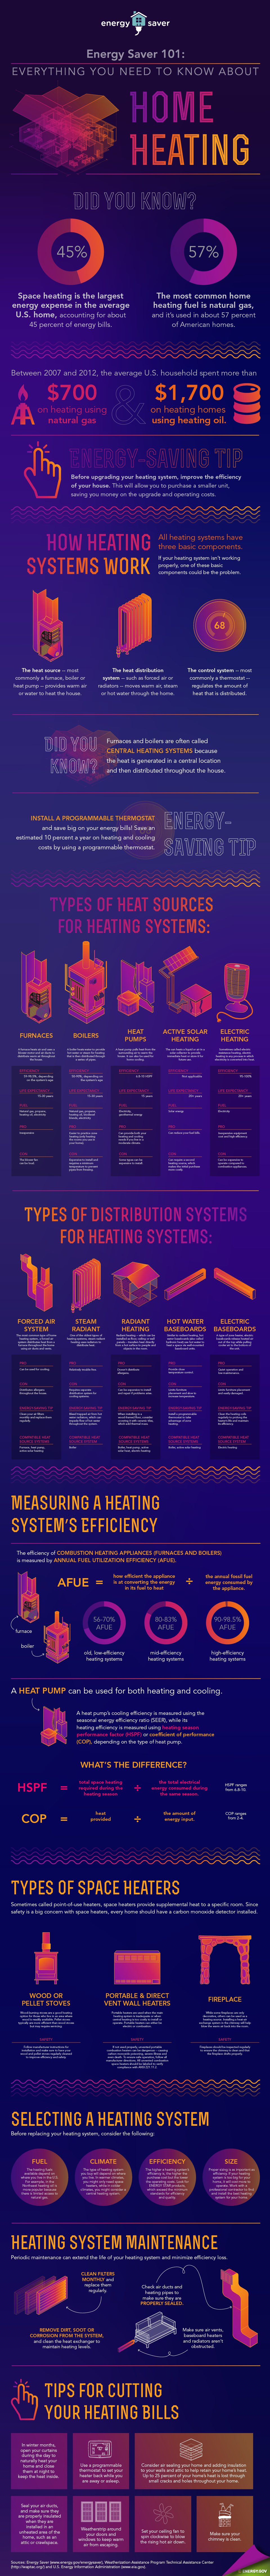 Our New Energy Saver 101 Infographic Lays Out Everything You Need To Know About Home Heating